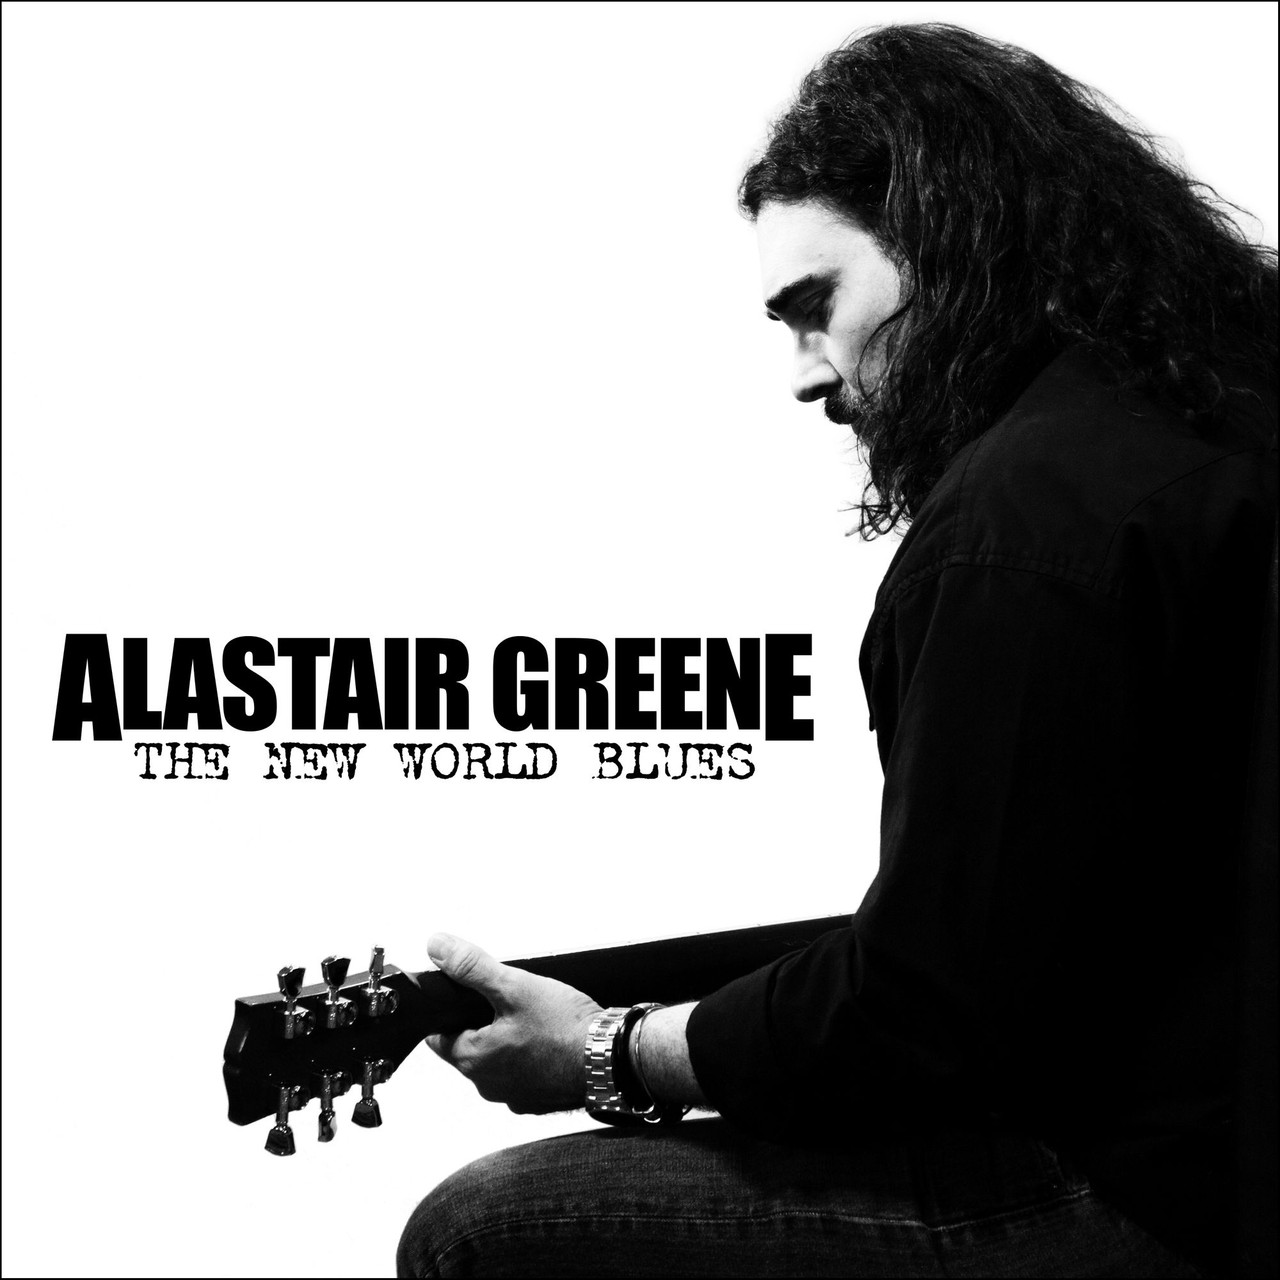 ALASTAIR GREENE - THE NEW WORLD BLUES